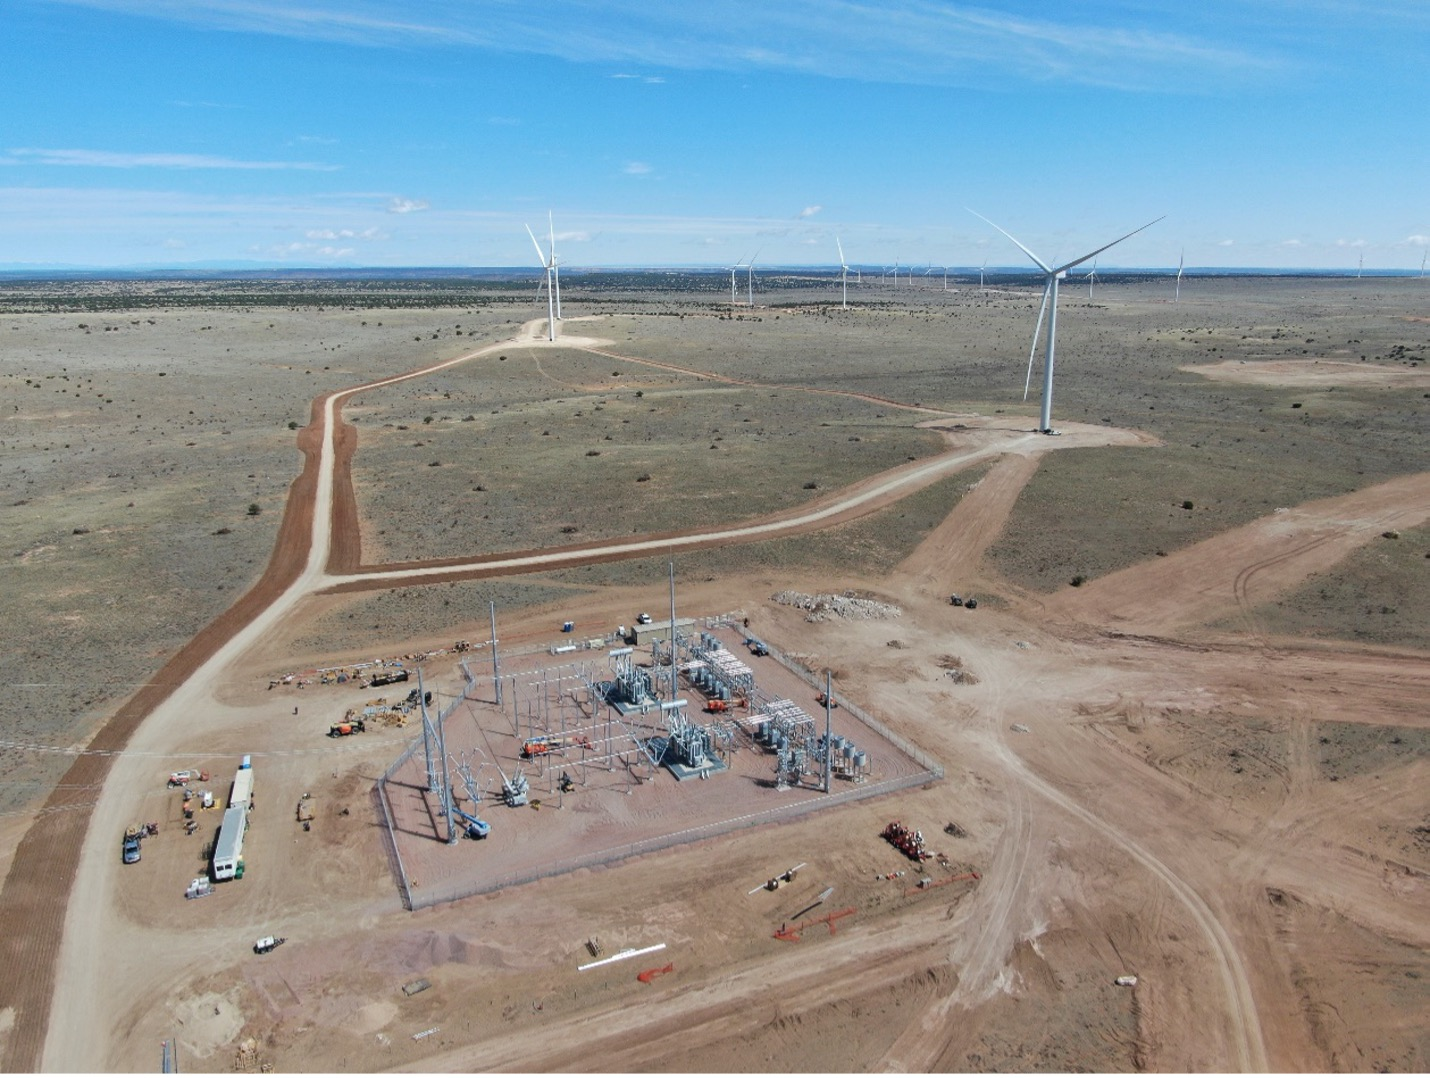 Uniper signs long-time PPA with Pattern for Western Spirit wind energy